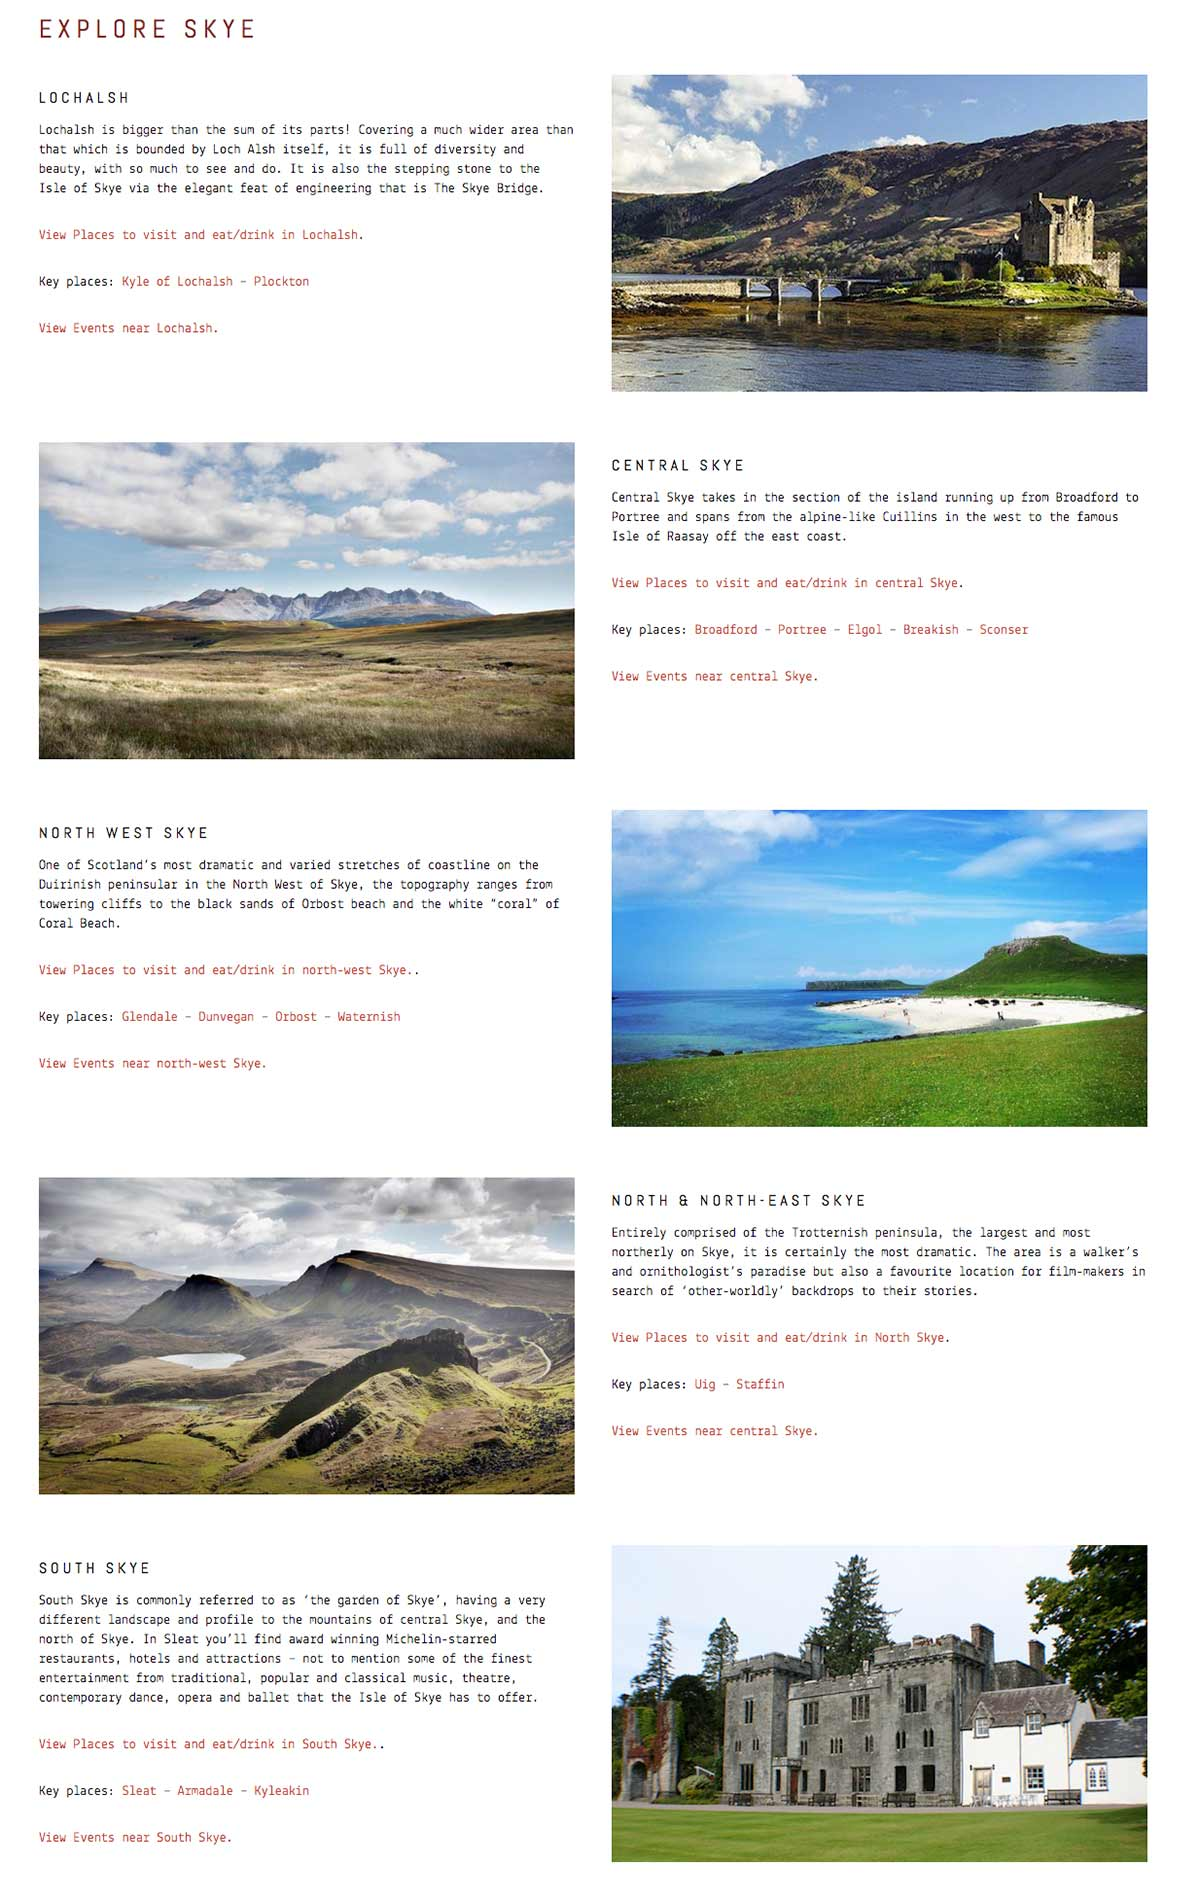 Skye Websites, Whats on Skye, Overview